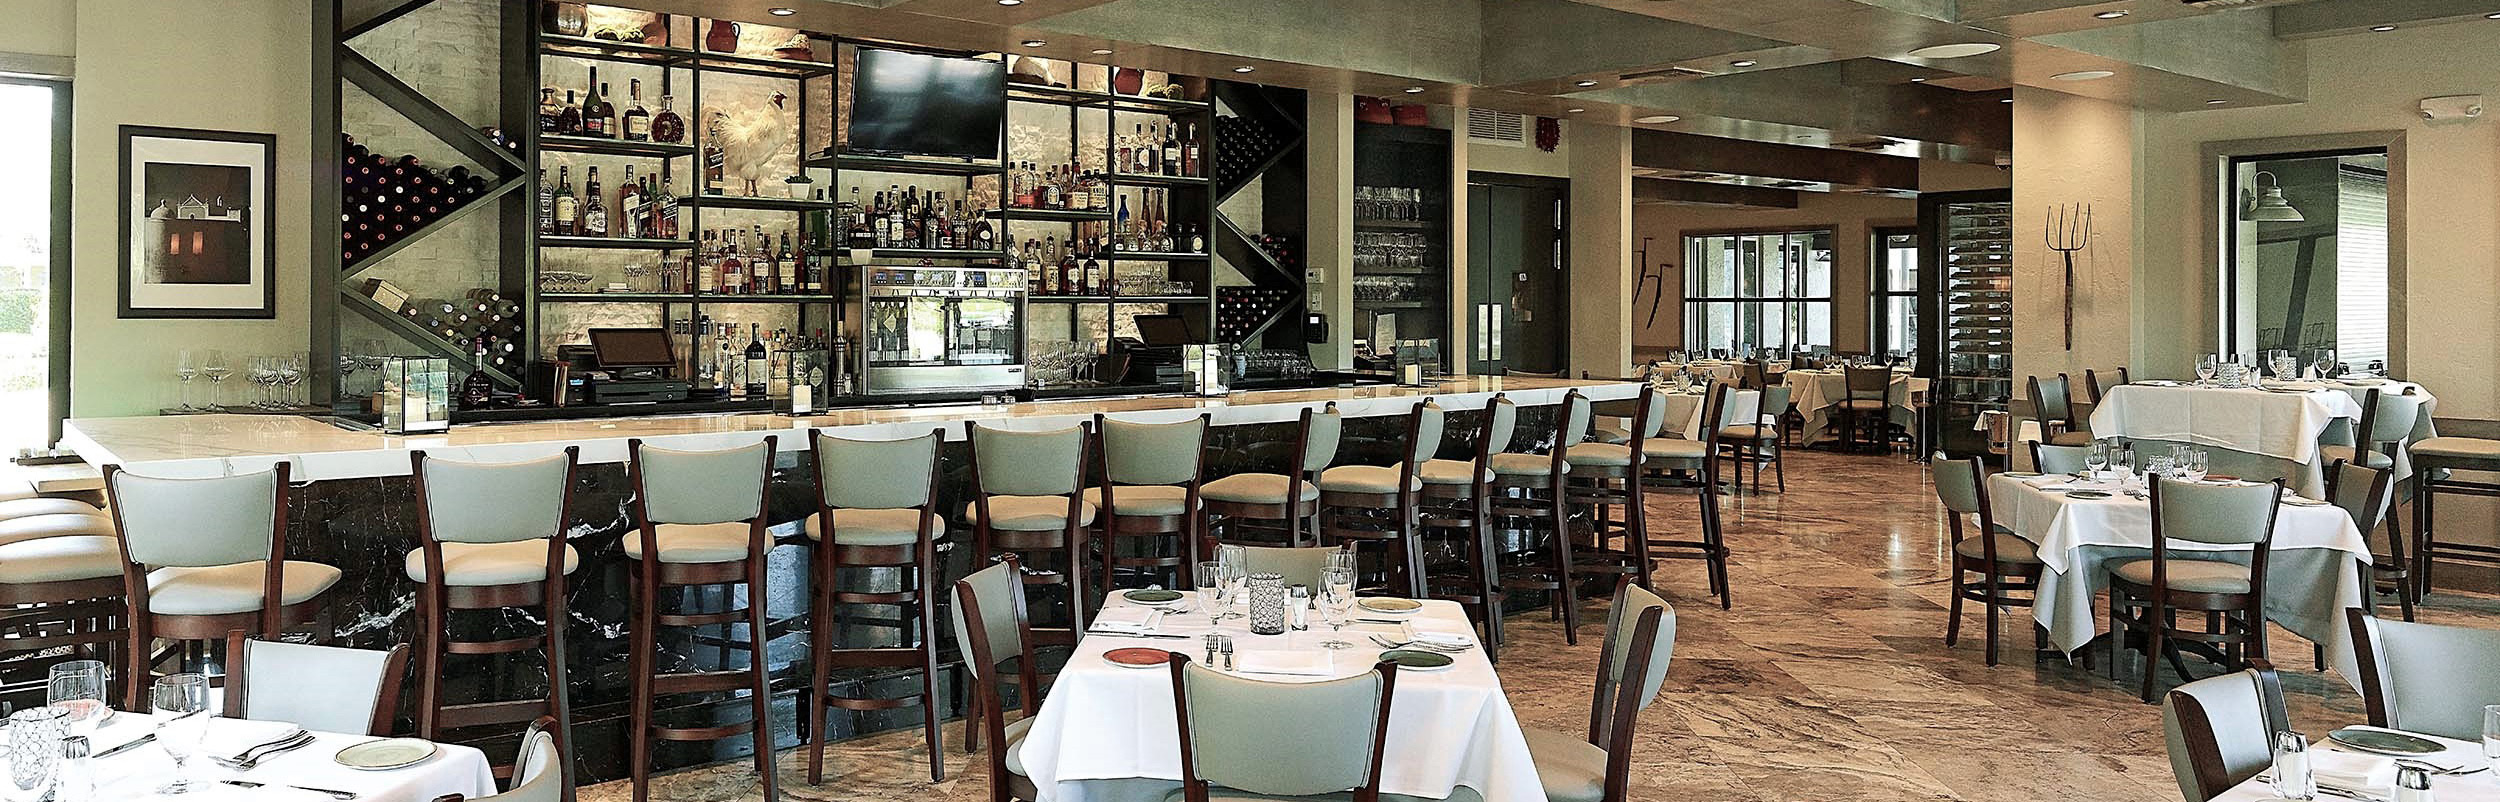 Italian restaurants palm beach gardens fl new images beach - New restaurants in palm beach gardens ...